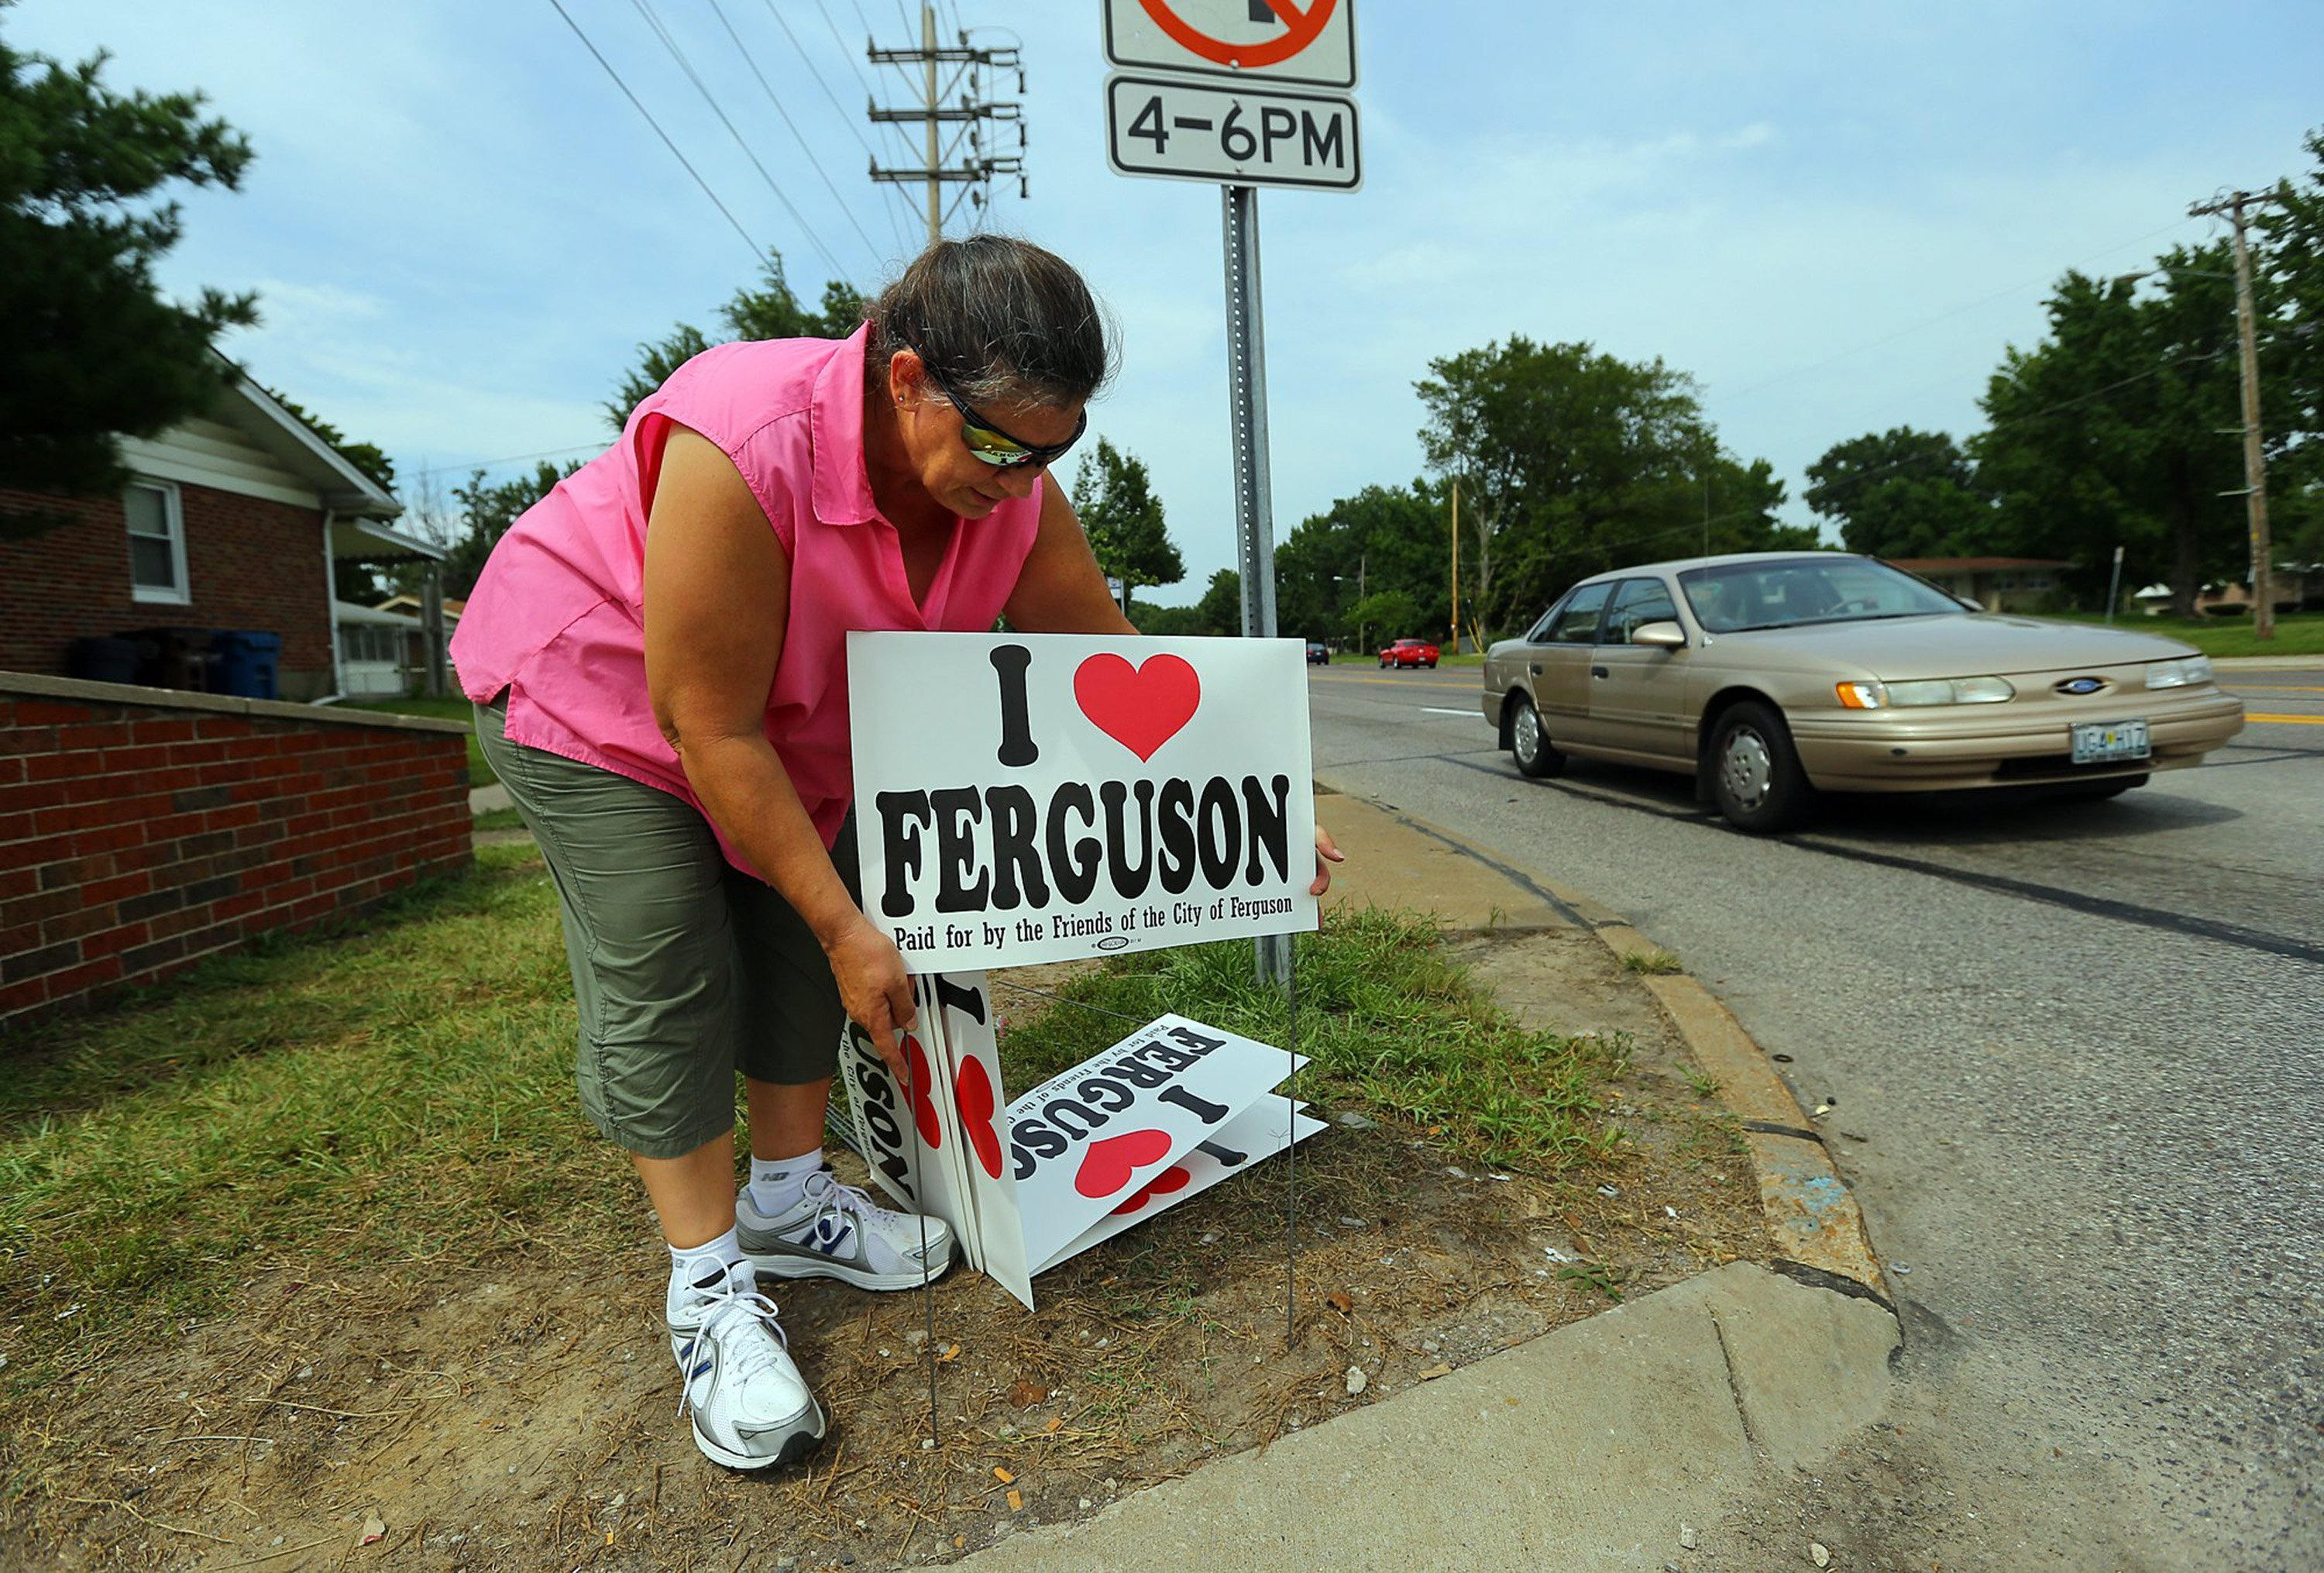 "Rainey Wilson, who lives in Ferguson, sets out signs along West Florissant Avenue on Wednesday, August 20, 2014, in Ferguson, Mo. ""We love Ferguson and want everyone to know it's not a bad place,"" said Wilson. (Curtis Compton/Atlanta Journal-Constitution/MCT)"